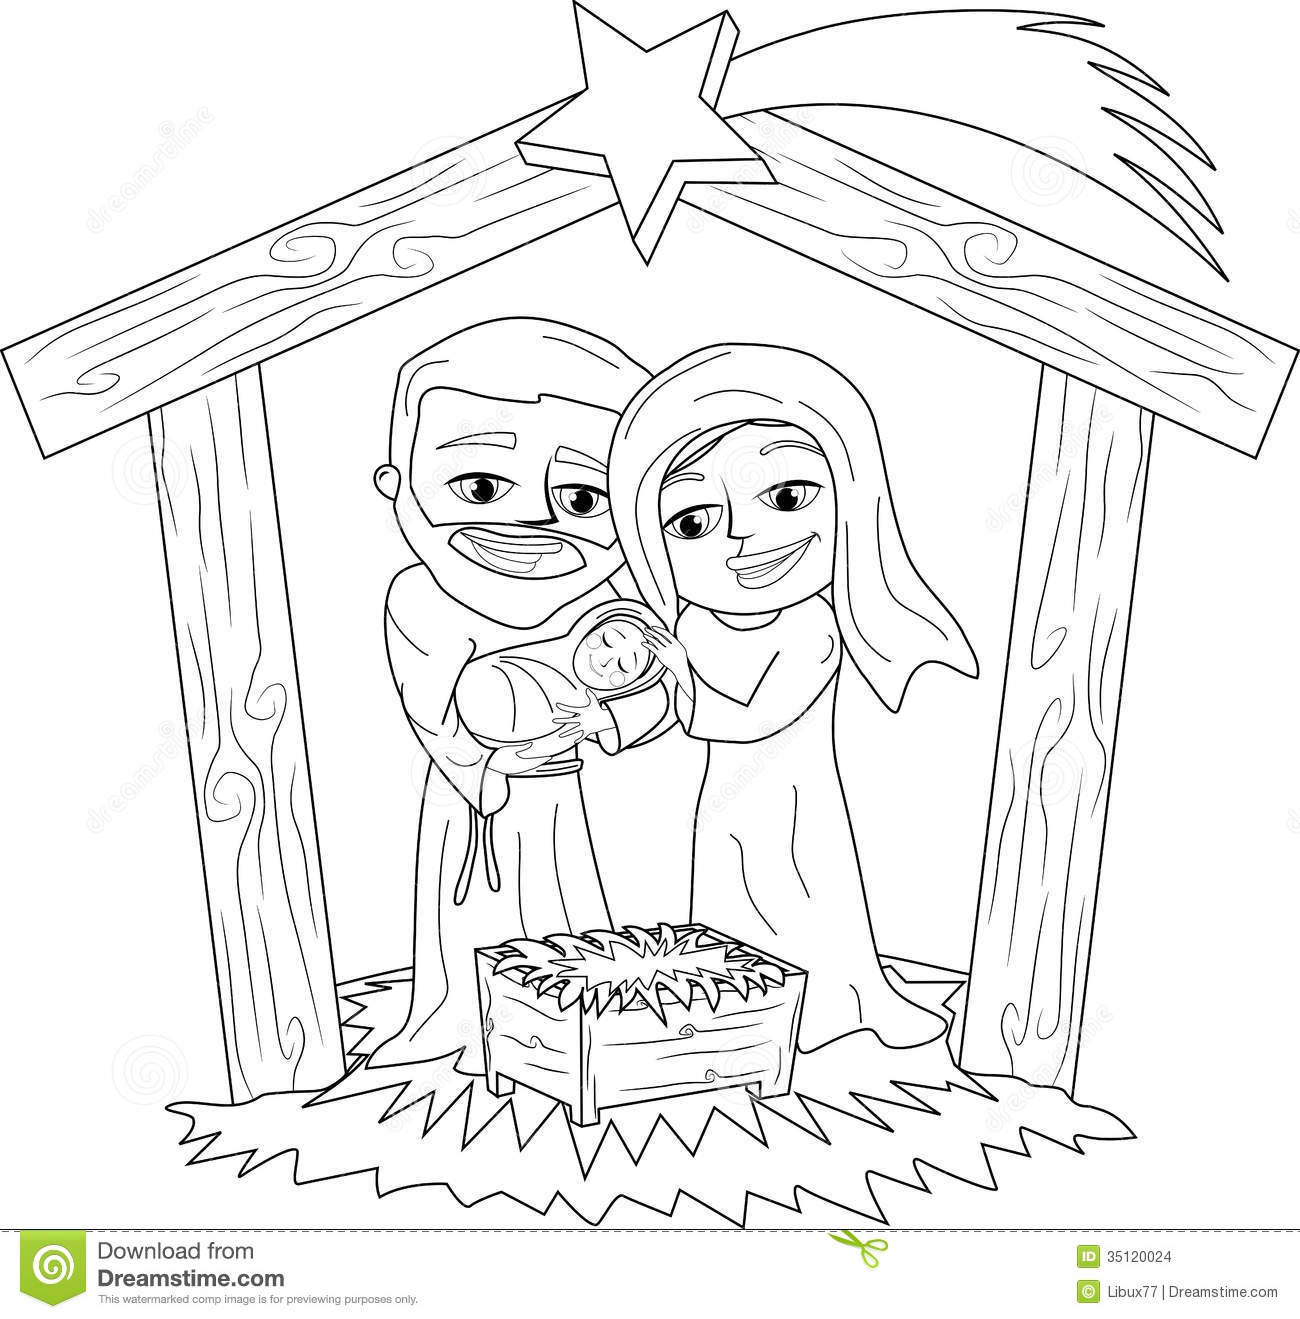 Santa And Baby Jesus Coloring Page With Christmas Nativity Scene Stock Vector Illustration